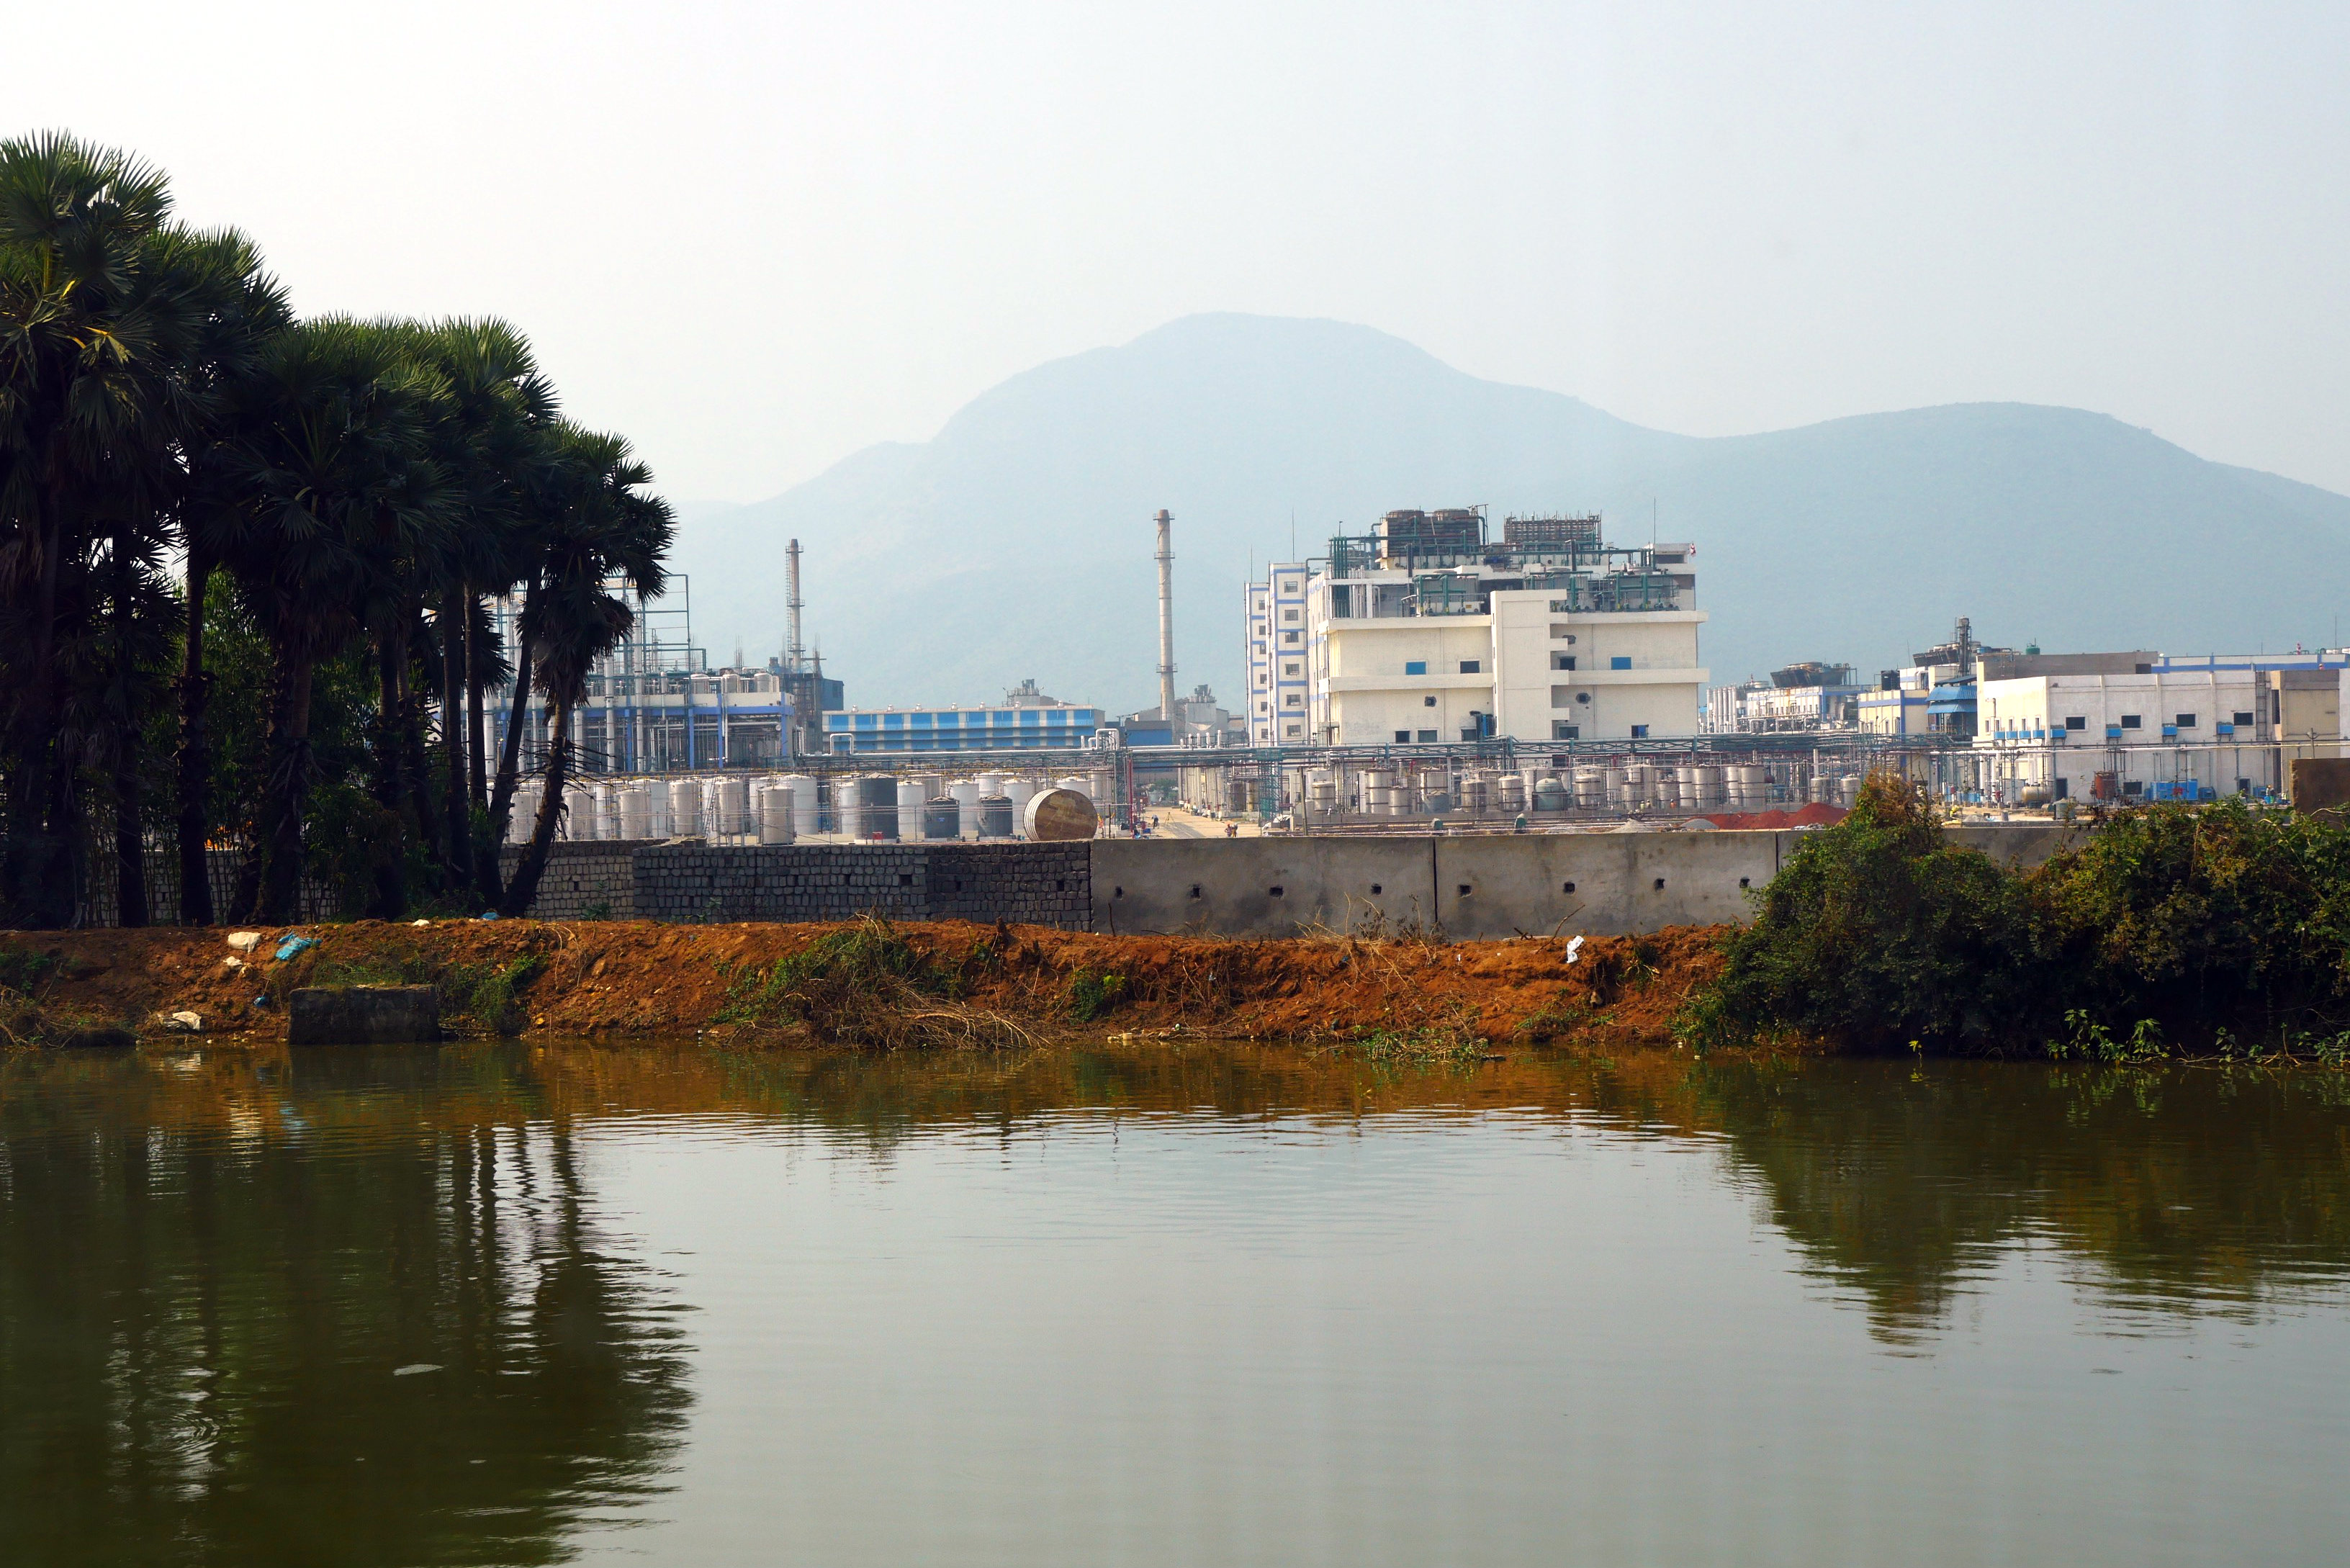 A file photo of an Aurobindo pharmaceutical factory in Pydibhimavaram, India. (Courtesy of Changing Markets)